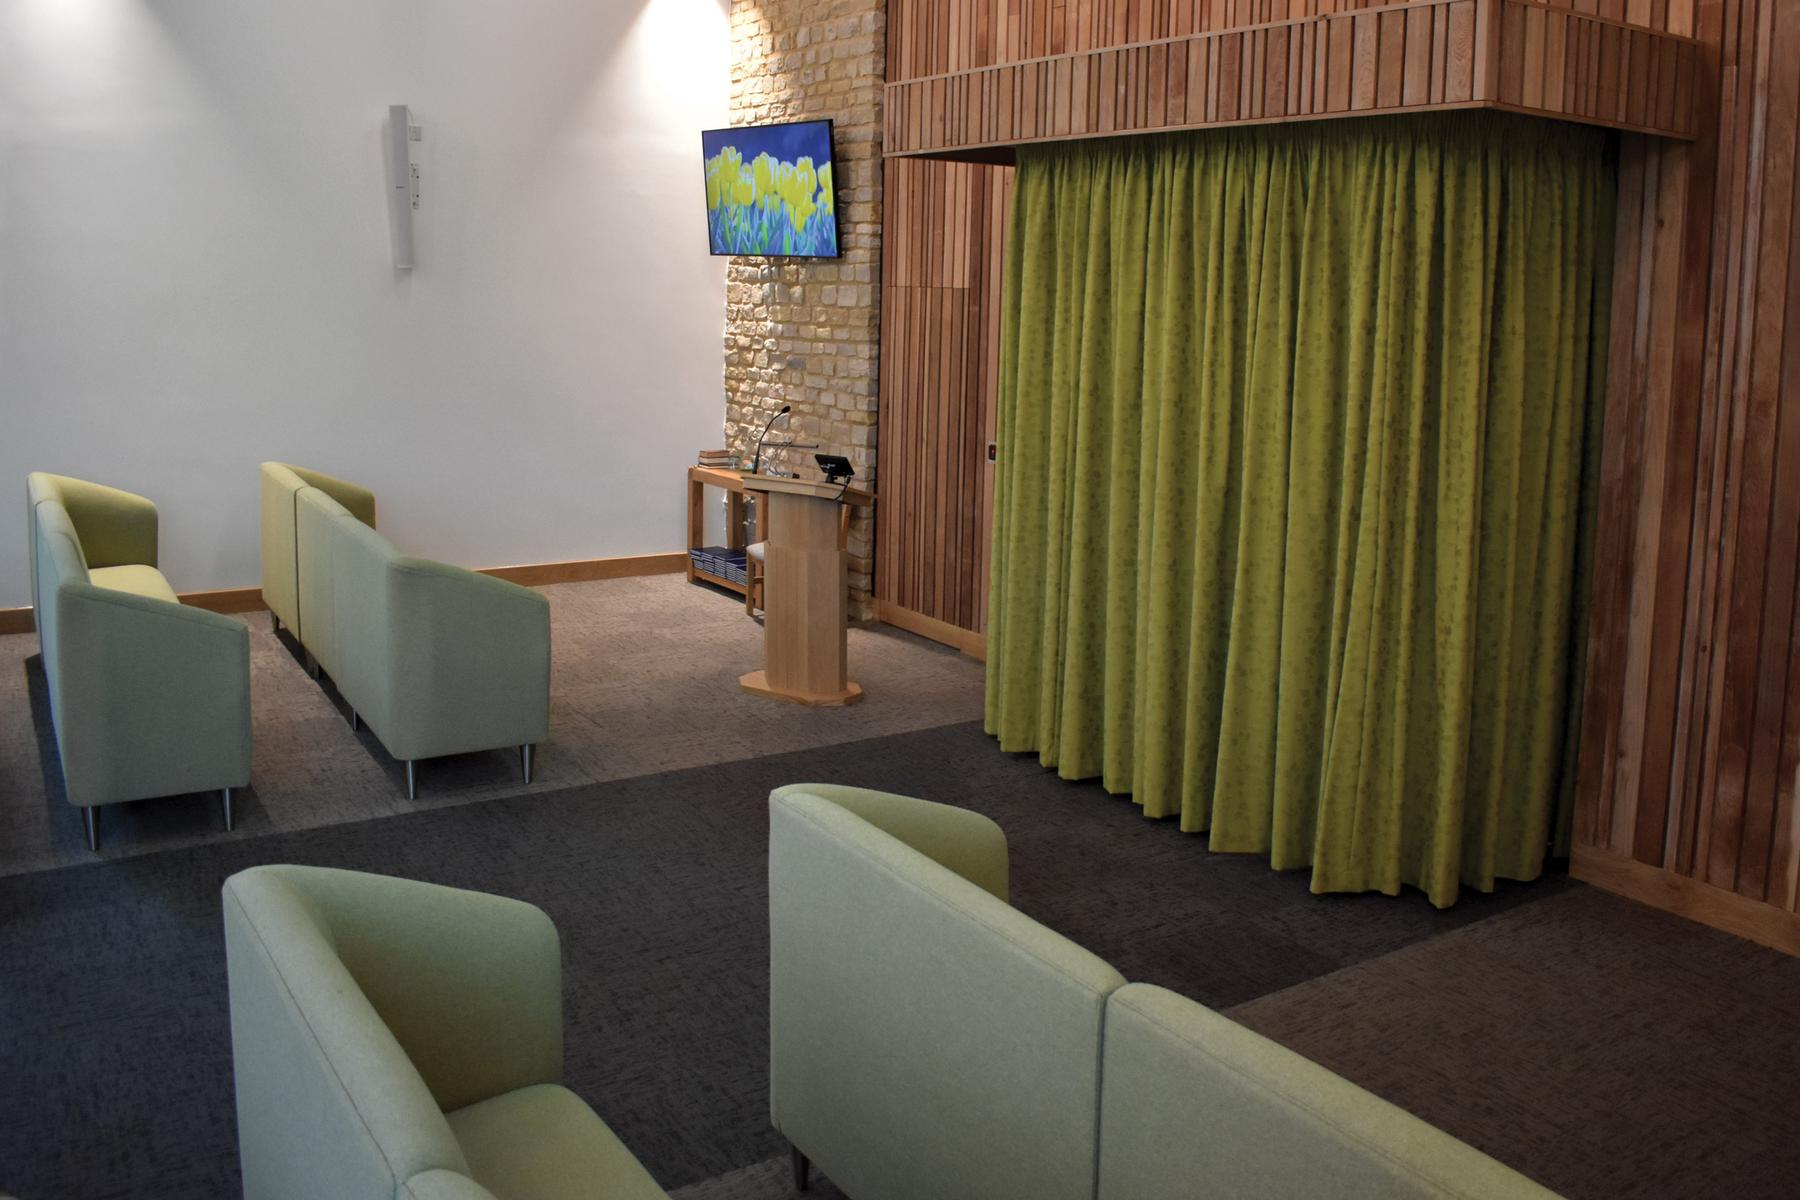 Cheltenham Crematorium curtains